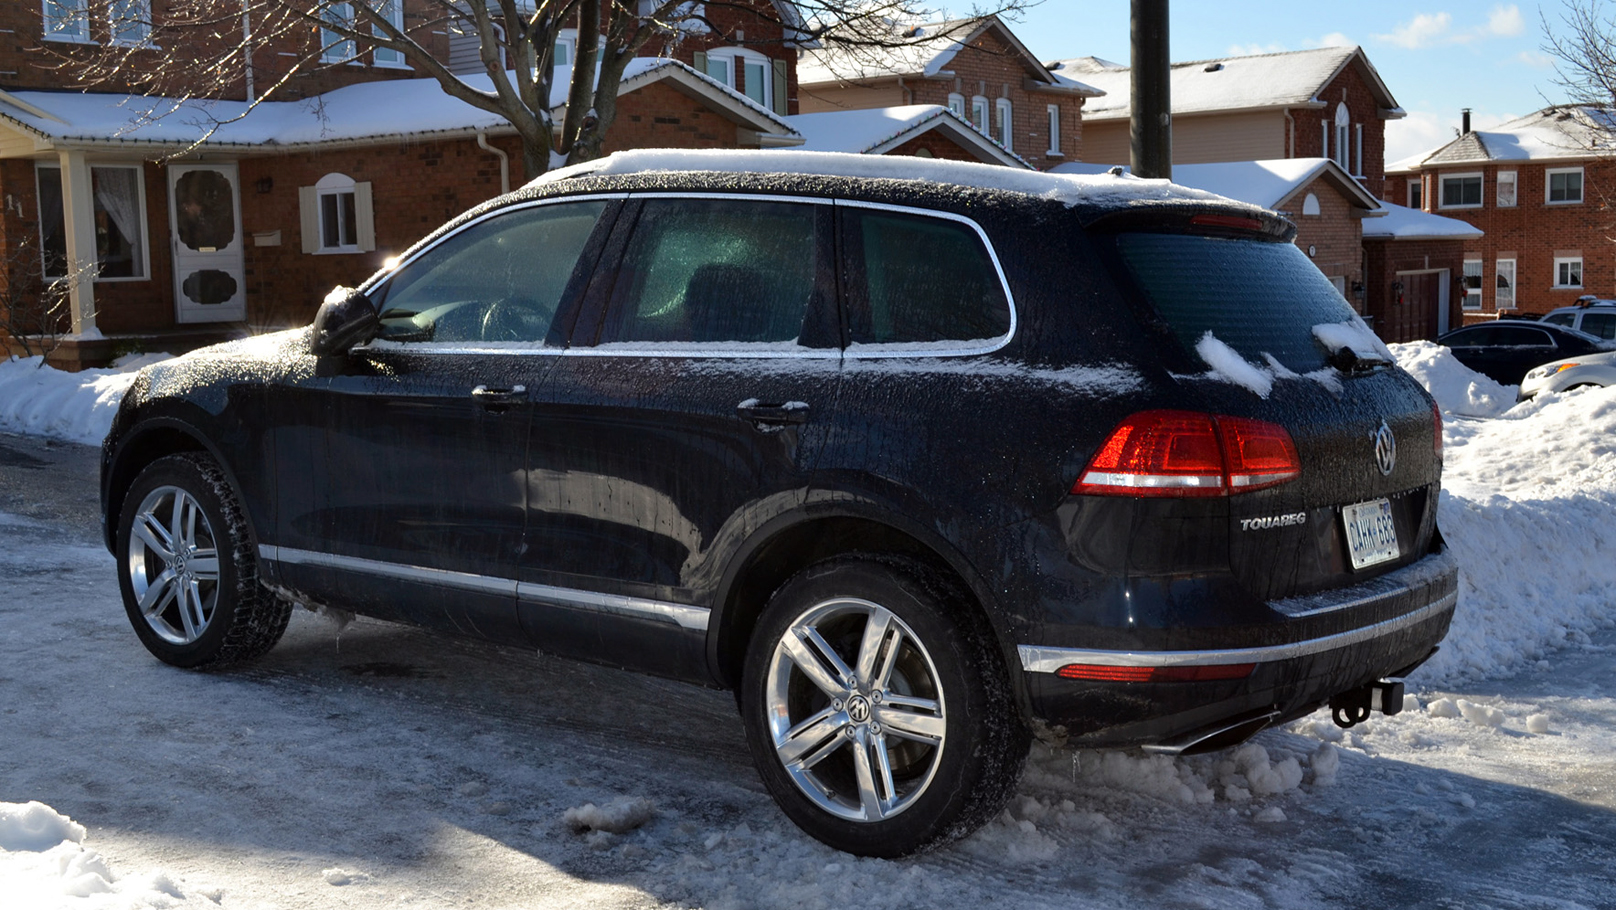 2017 Volkswagen Touareg V6 Wolfsburg Edition >> VW Touareg is a Solid SUV for Families – WHEELS.ca